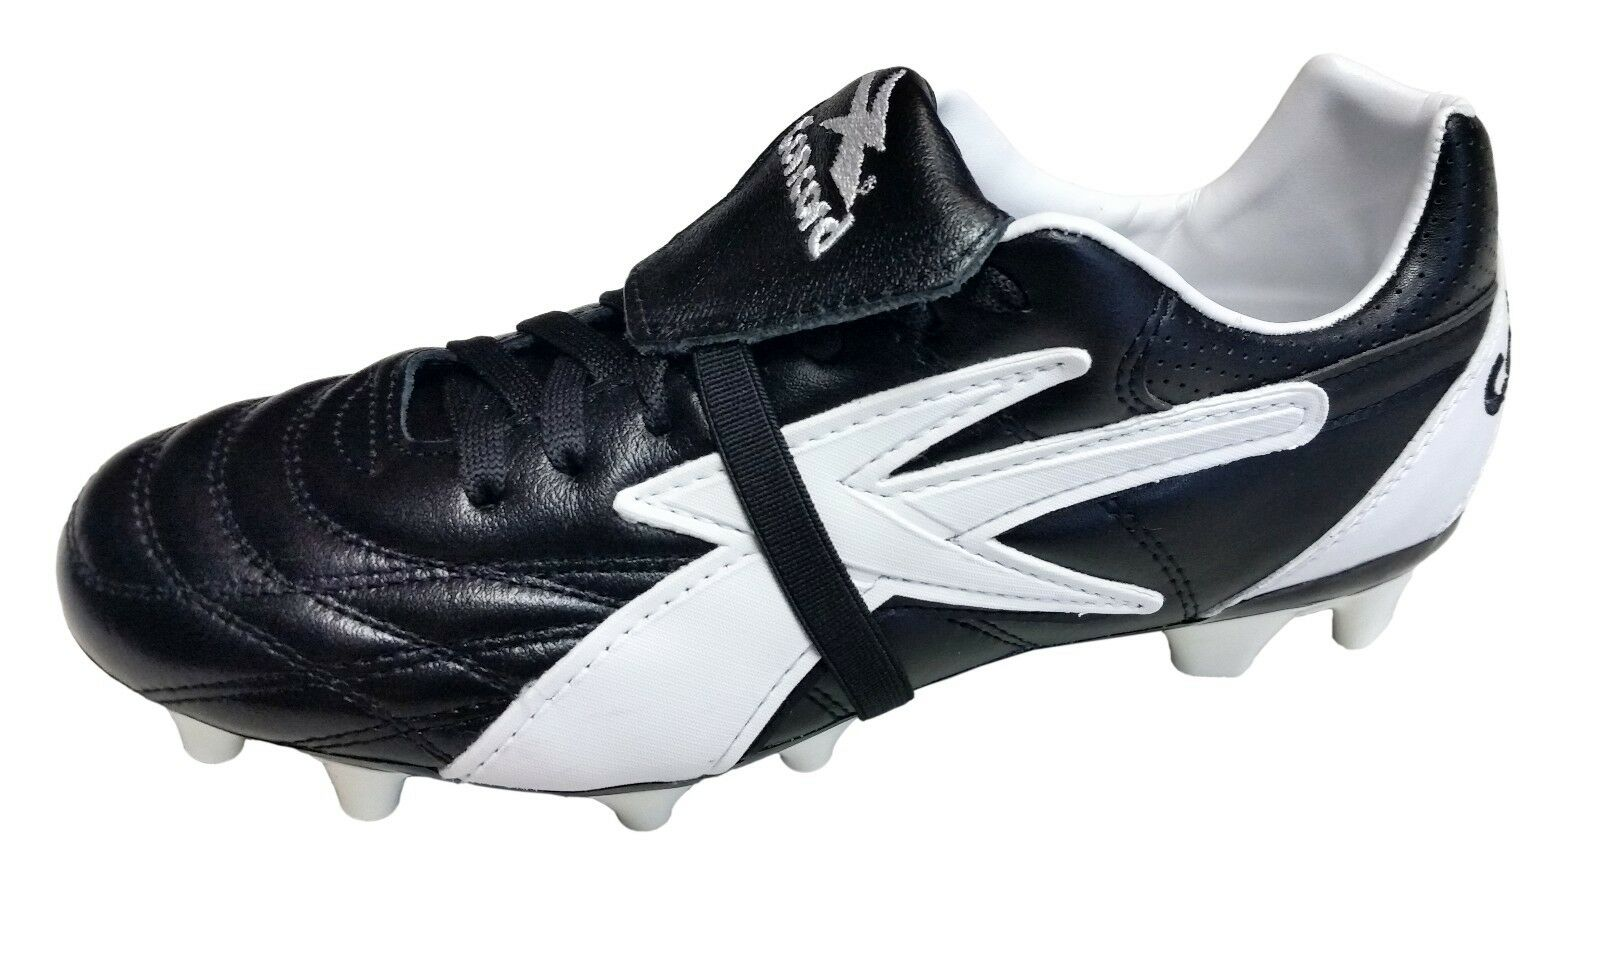 Authentic Concord Leather Soccer Cleats Style S132